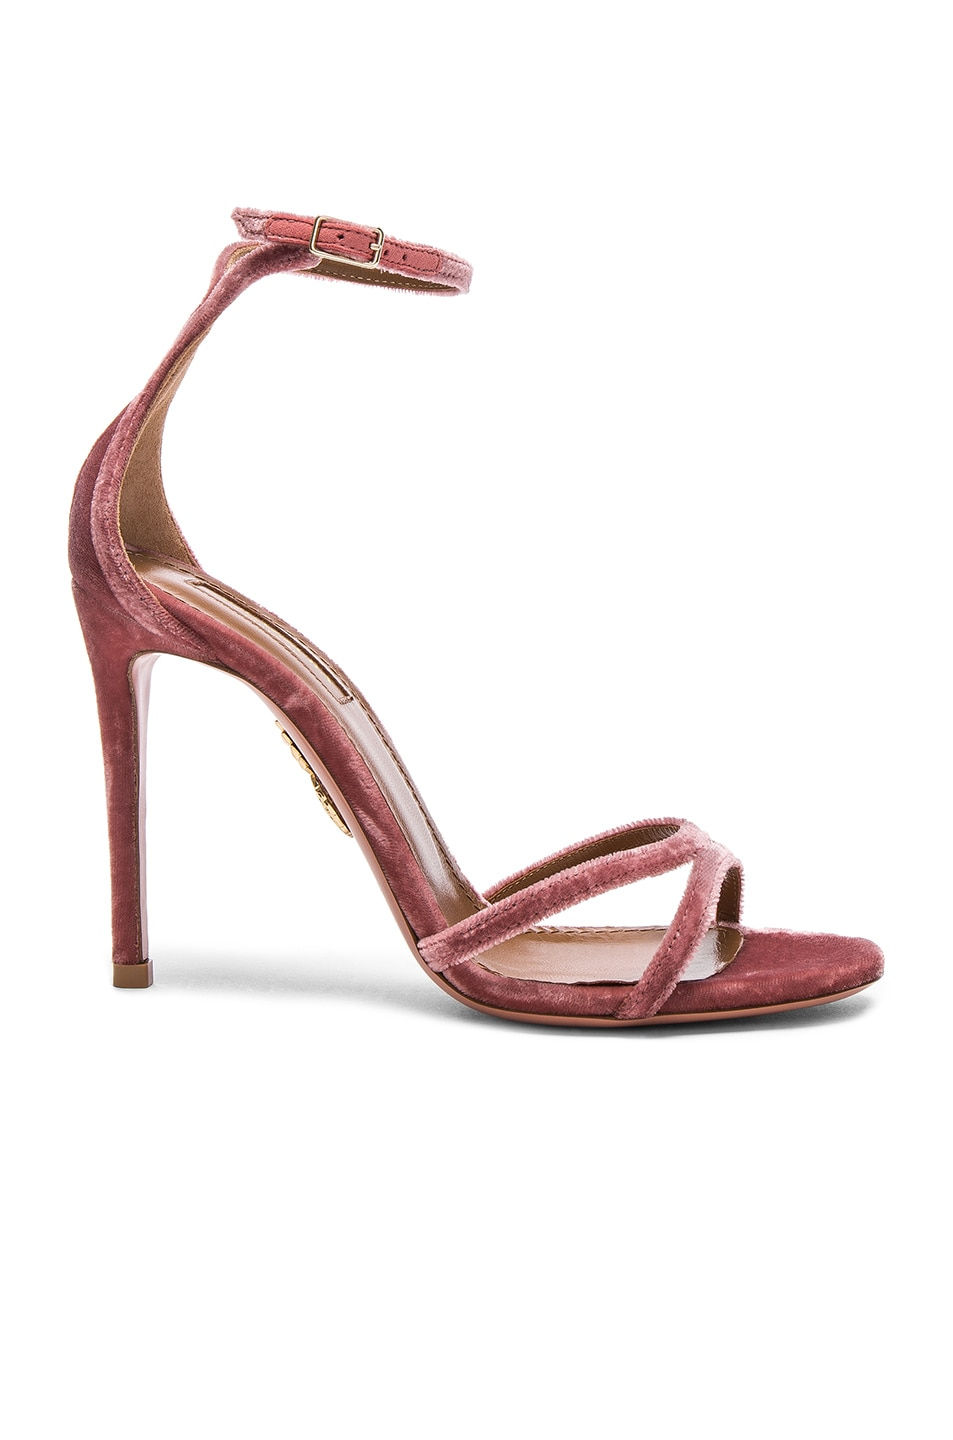 Image 1 of Aquazzura Velvet Purist Sandal Heels in Antique Rose